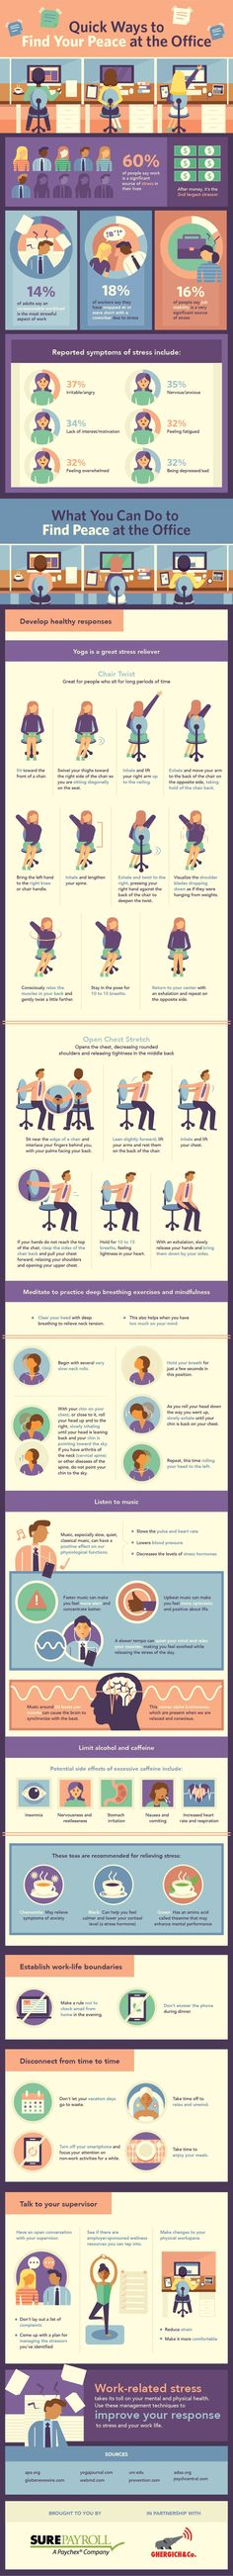 How to Reduce Stress and Stay Sane on the Job - Infographic | Fashionably Frank Blog